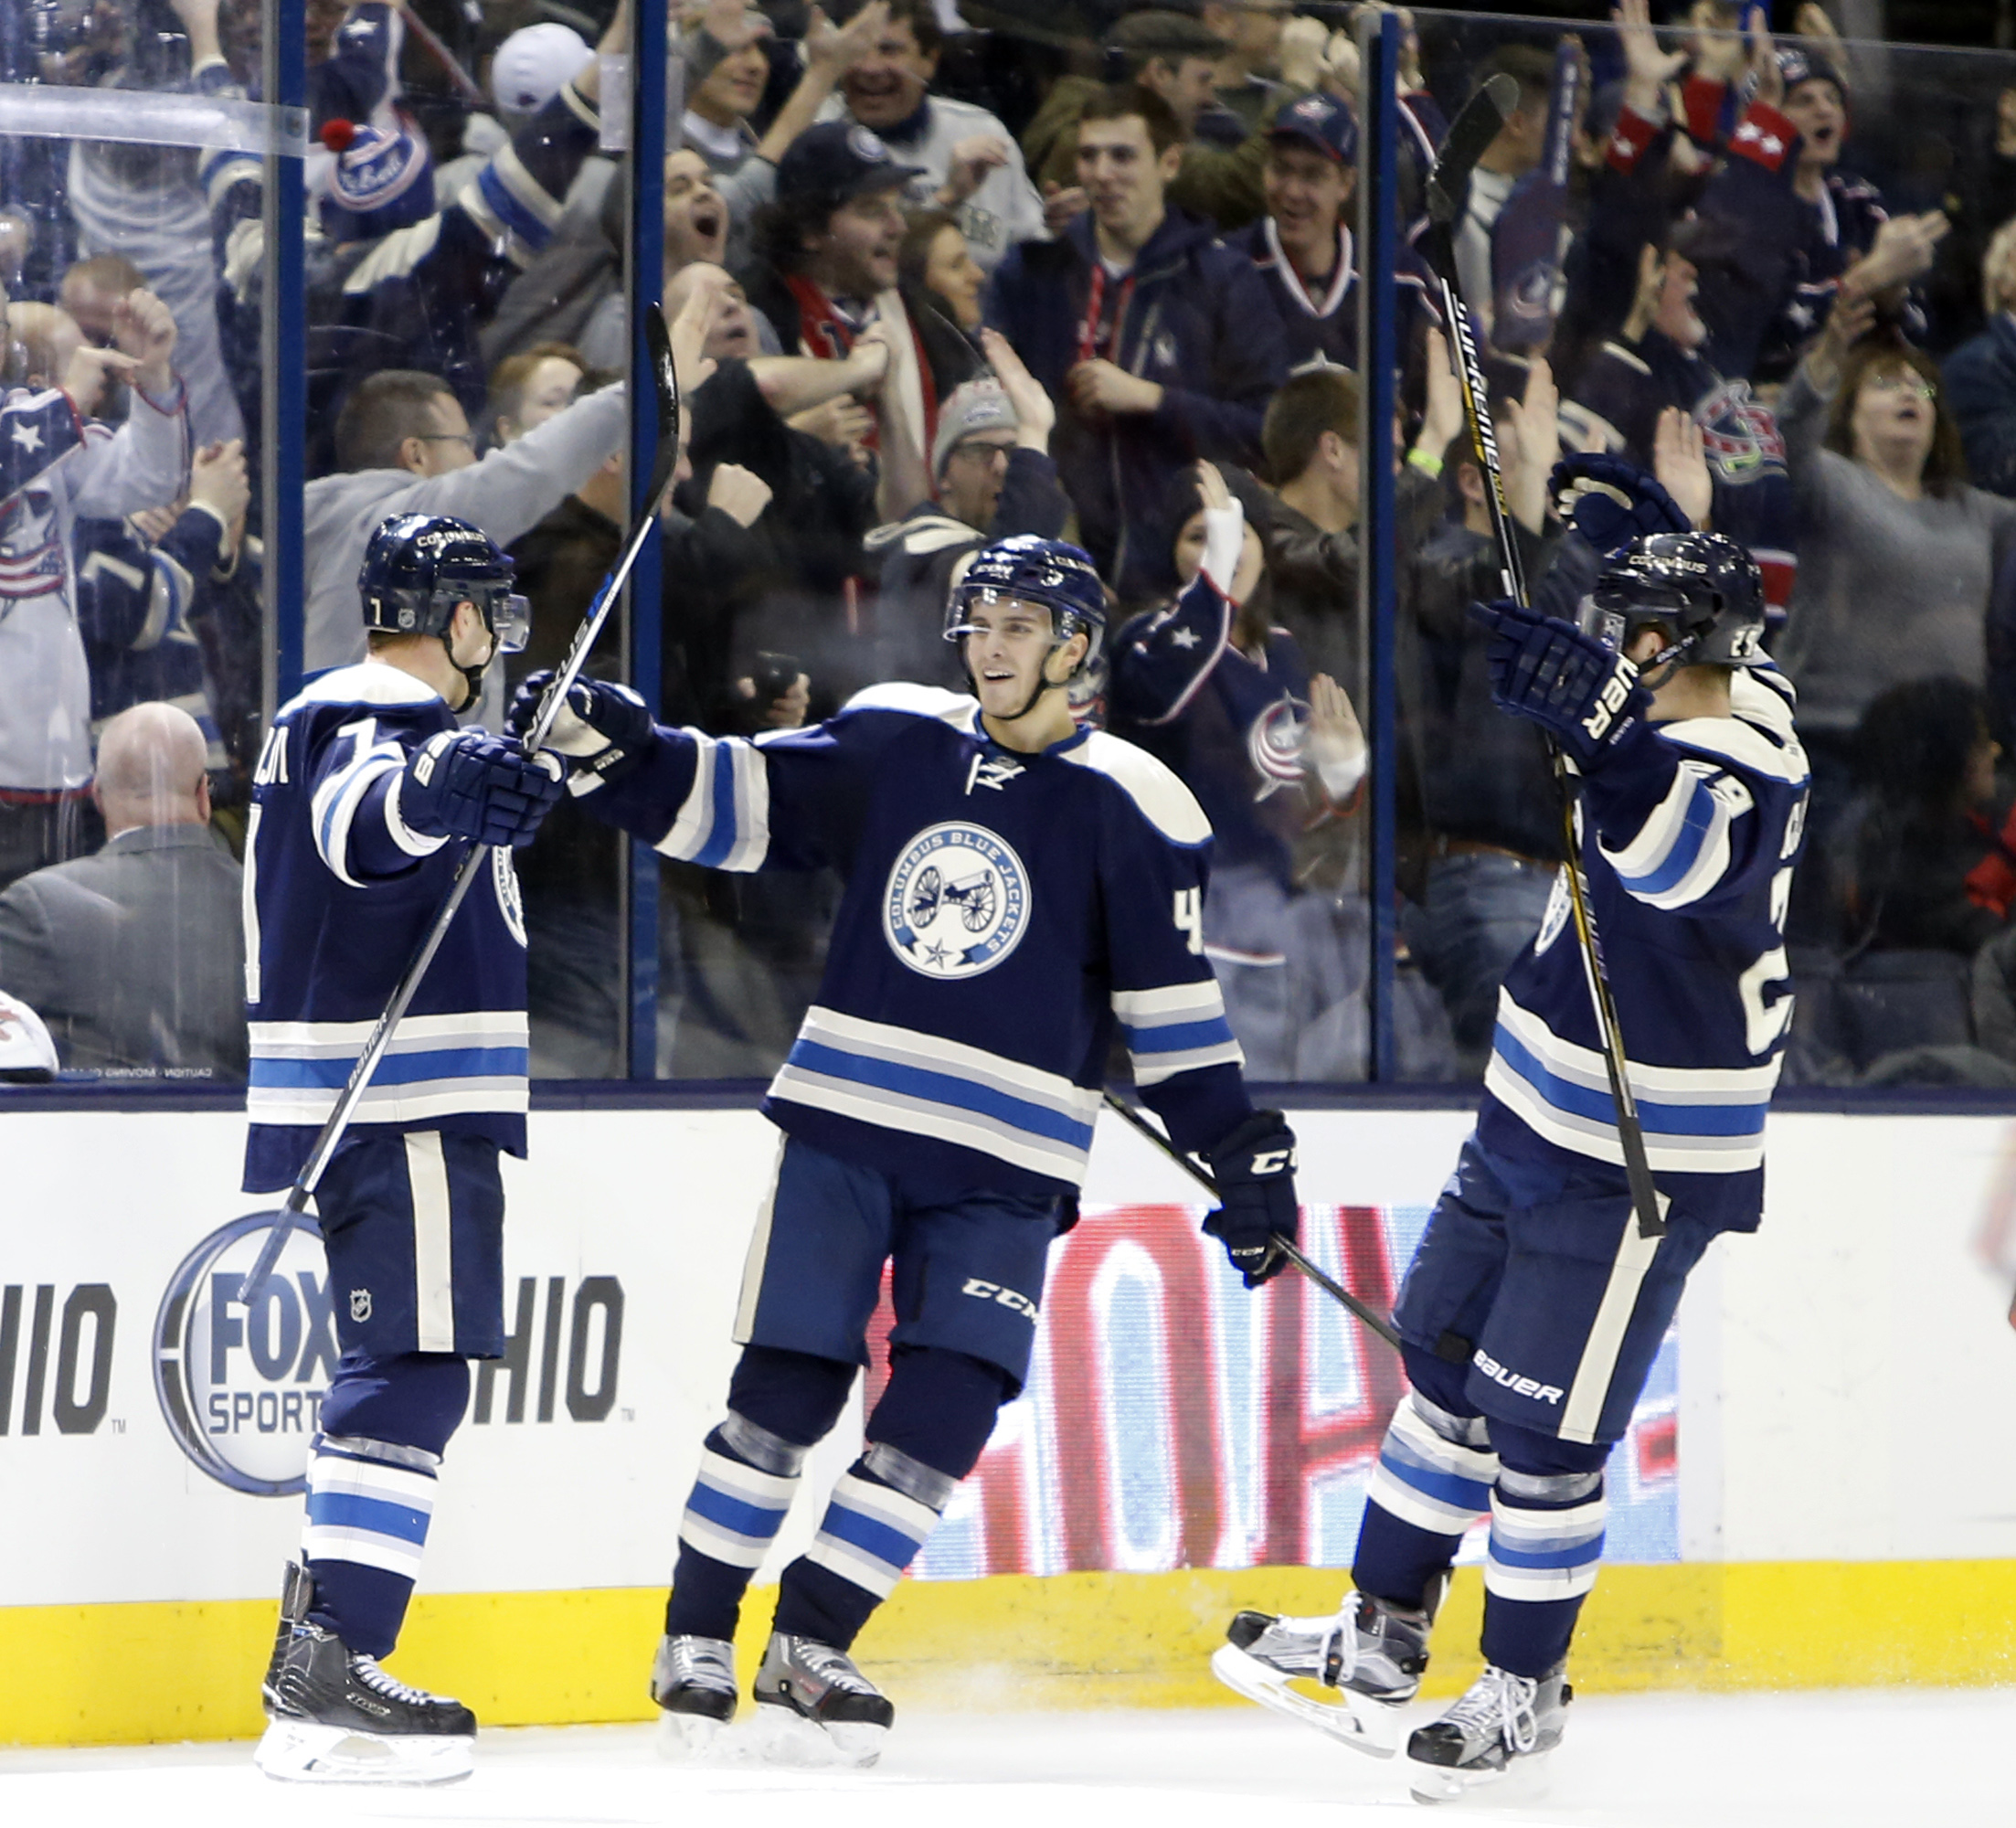 Columbus Blue Jackets' Jack Johnson, left, celebrates his winning goal against the Colorado Avalanche with teammates Alexander Wennberg, center, of Sweden, and Cody Goloubef during the third period of an NHL hockey game Saturday, Jan. 16, 2016, in Columbu